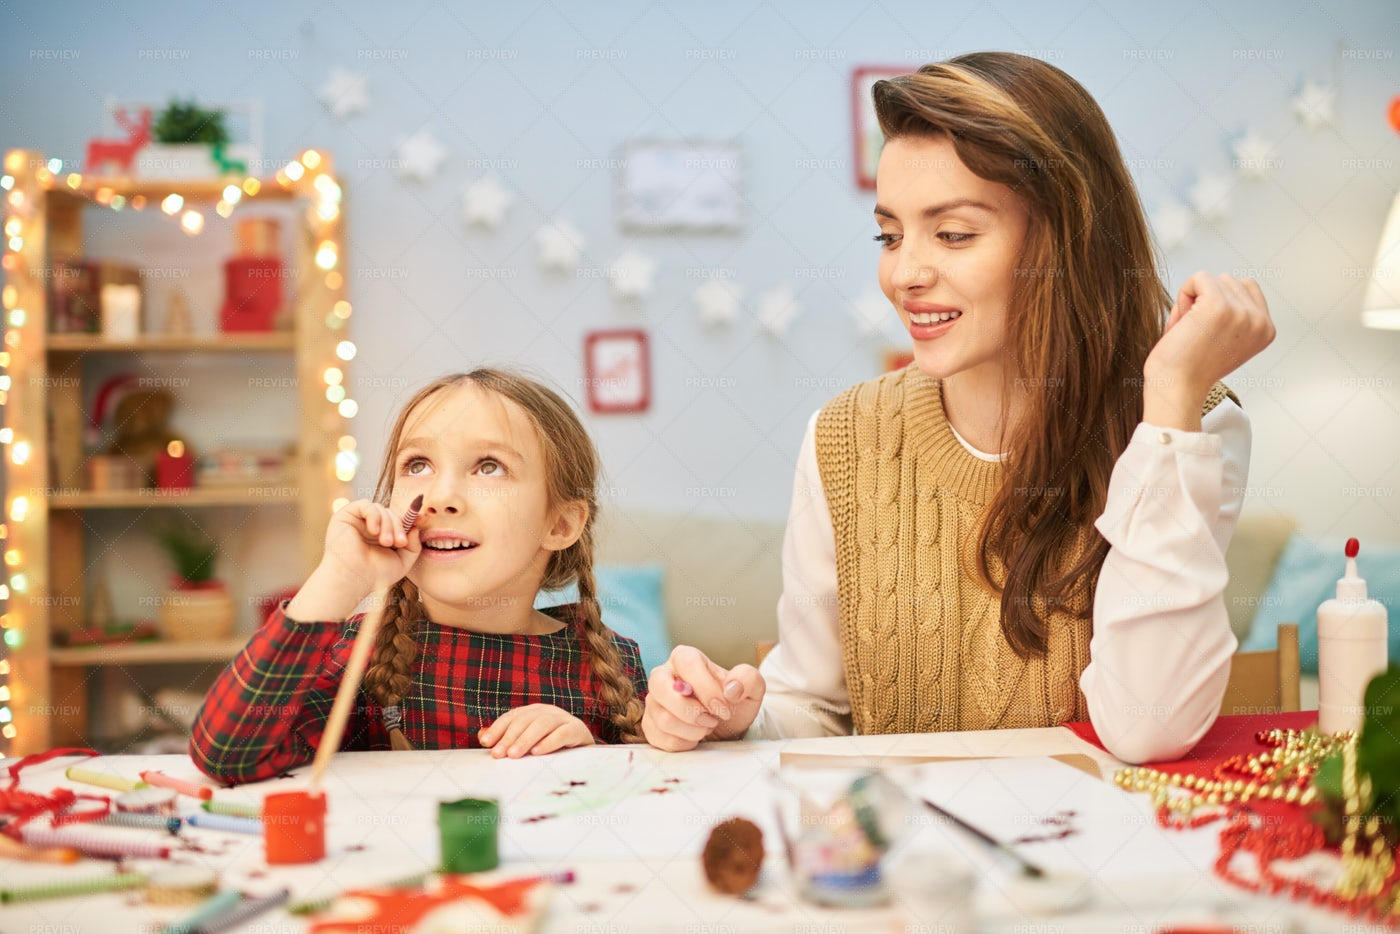 Joint Work On Creation Of Christmas...: Stock Photos